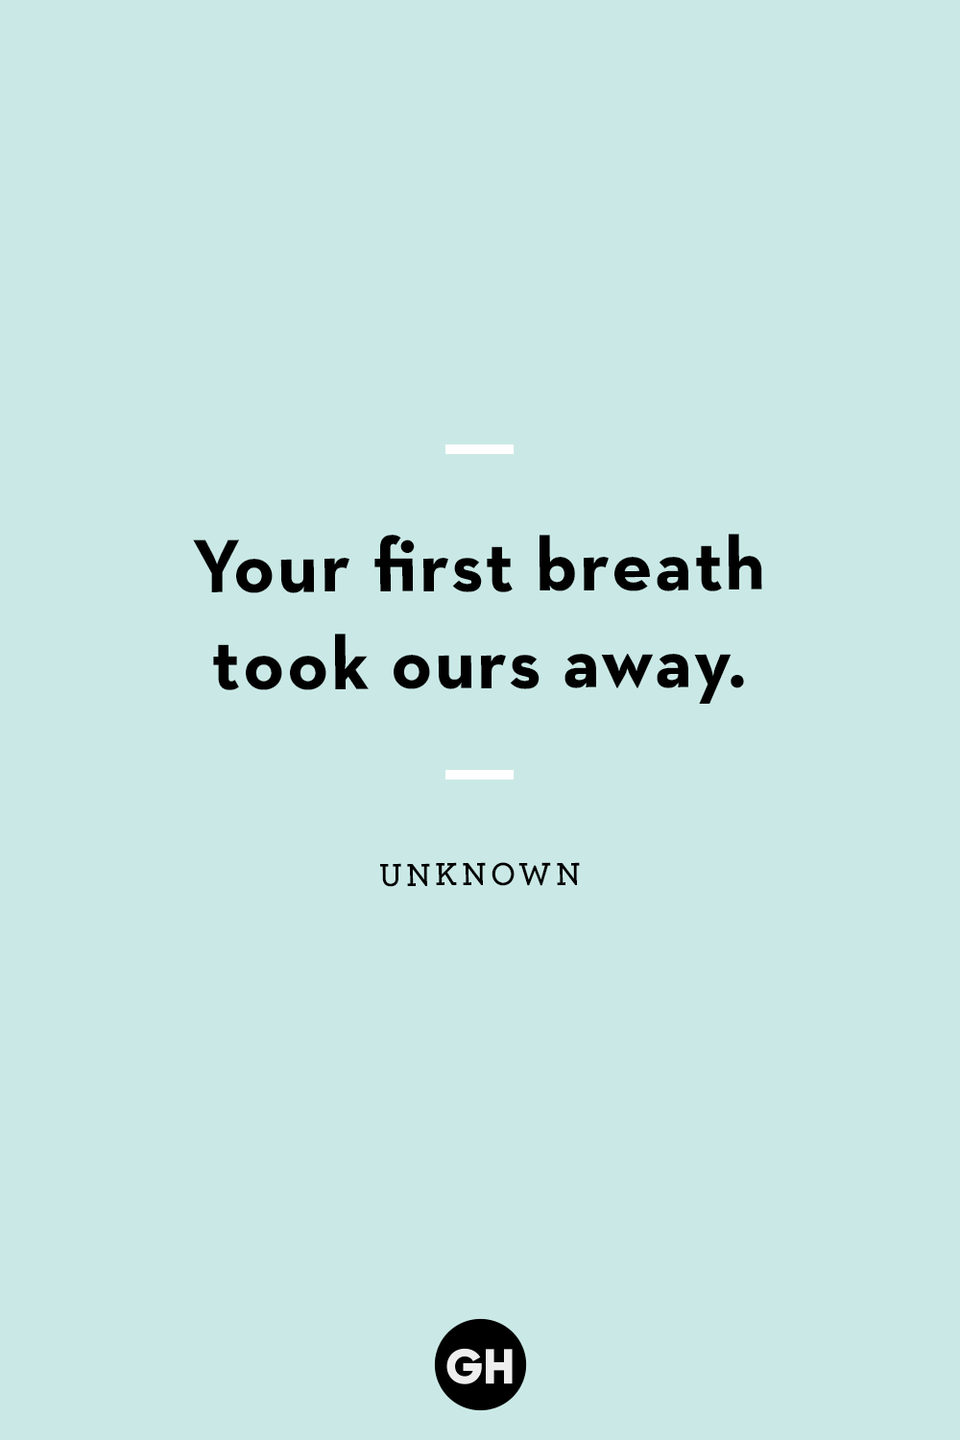 <p>Your first breath took ours away.</p>